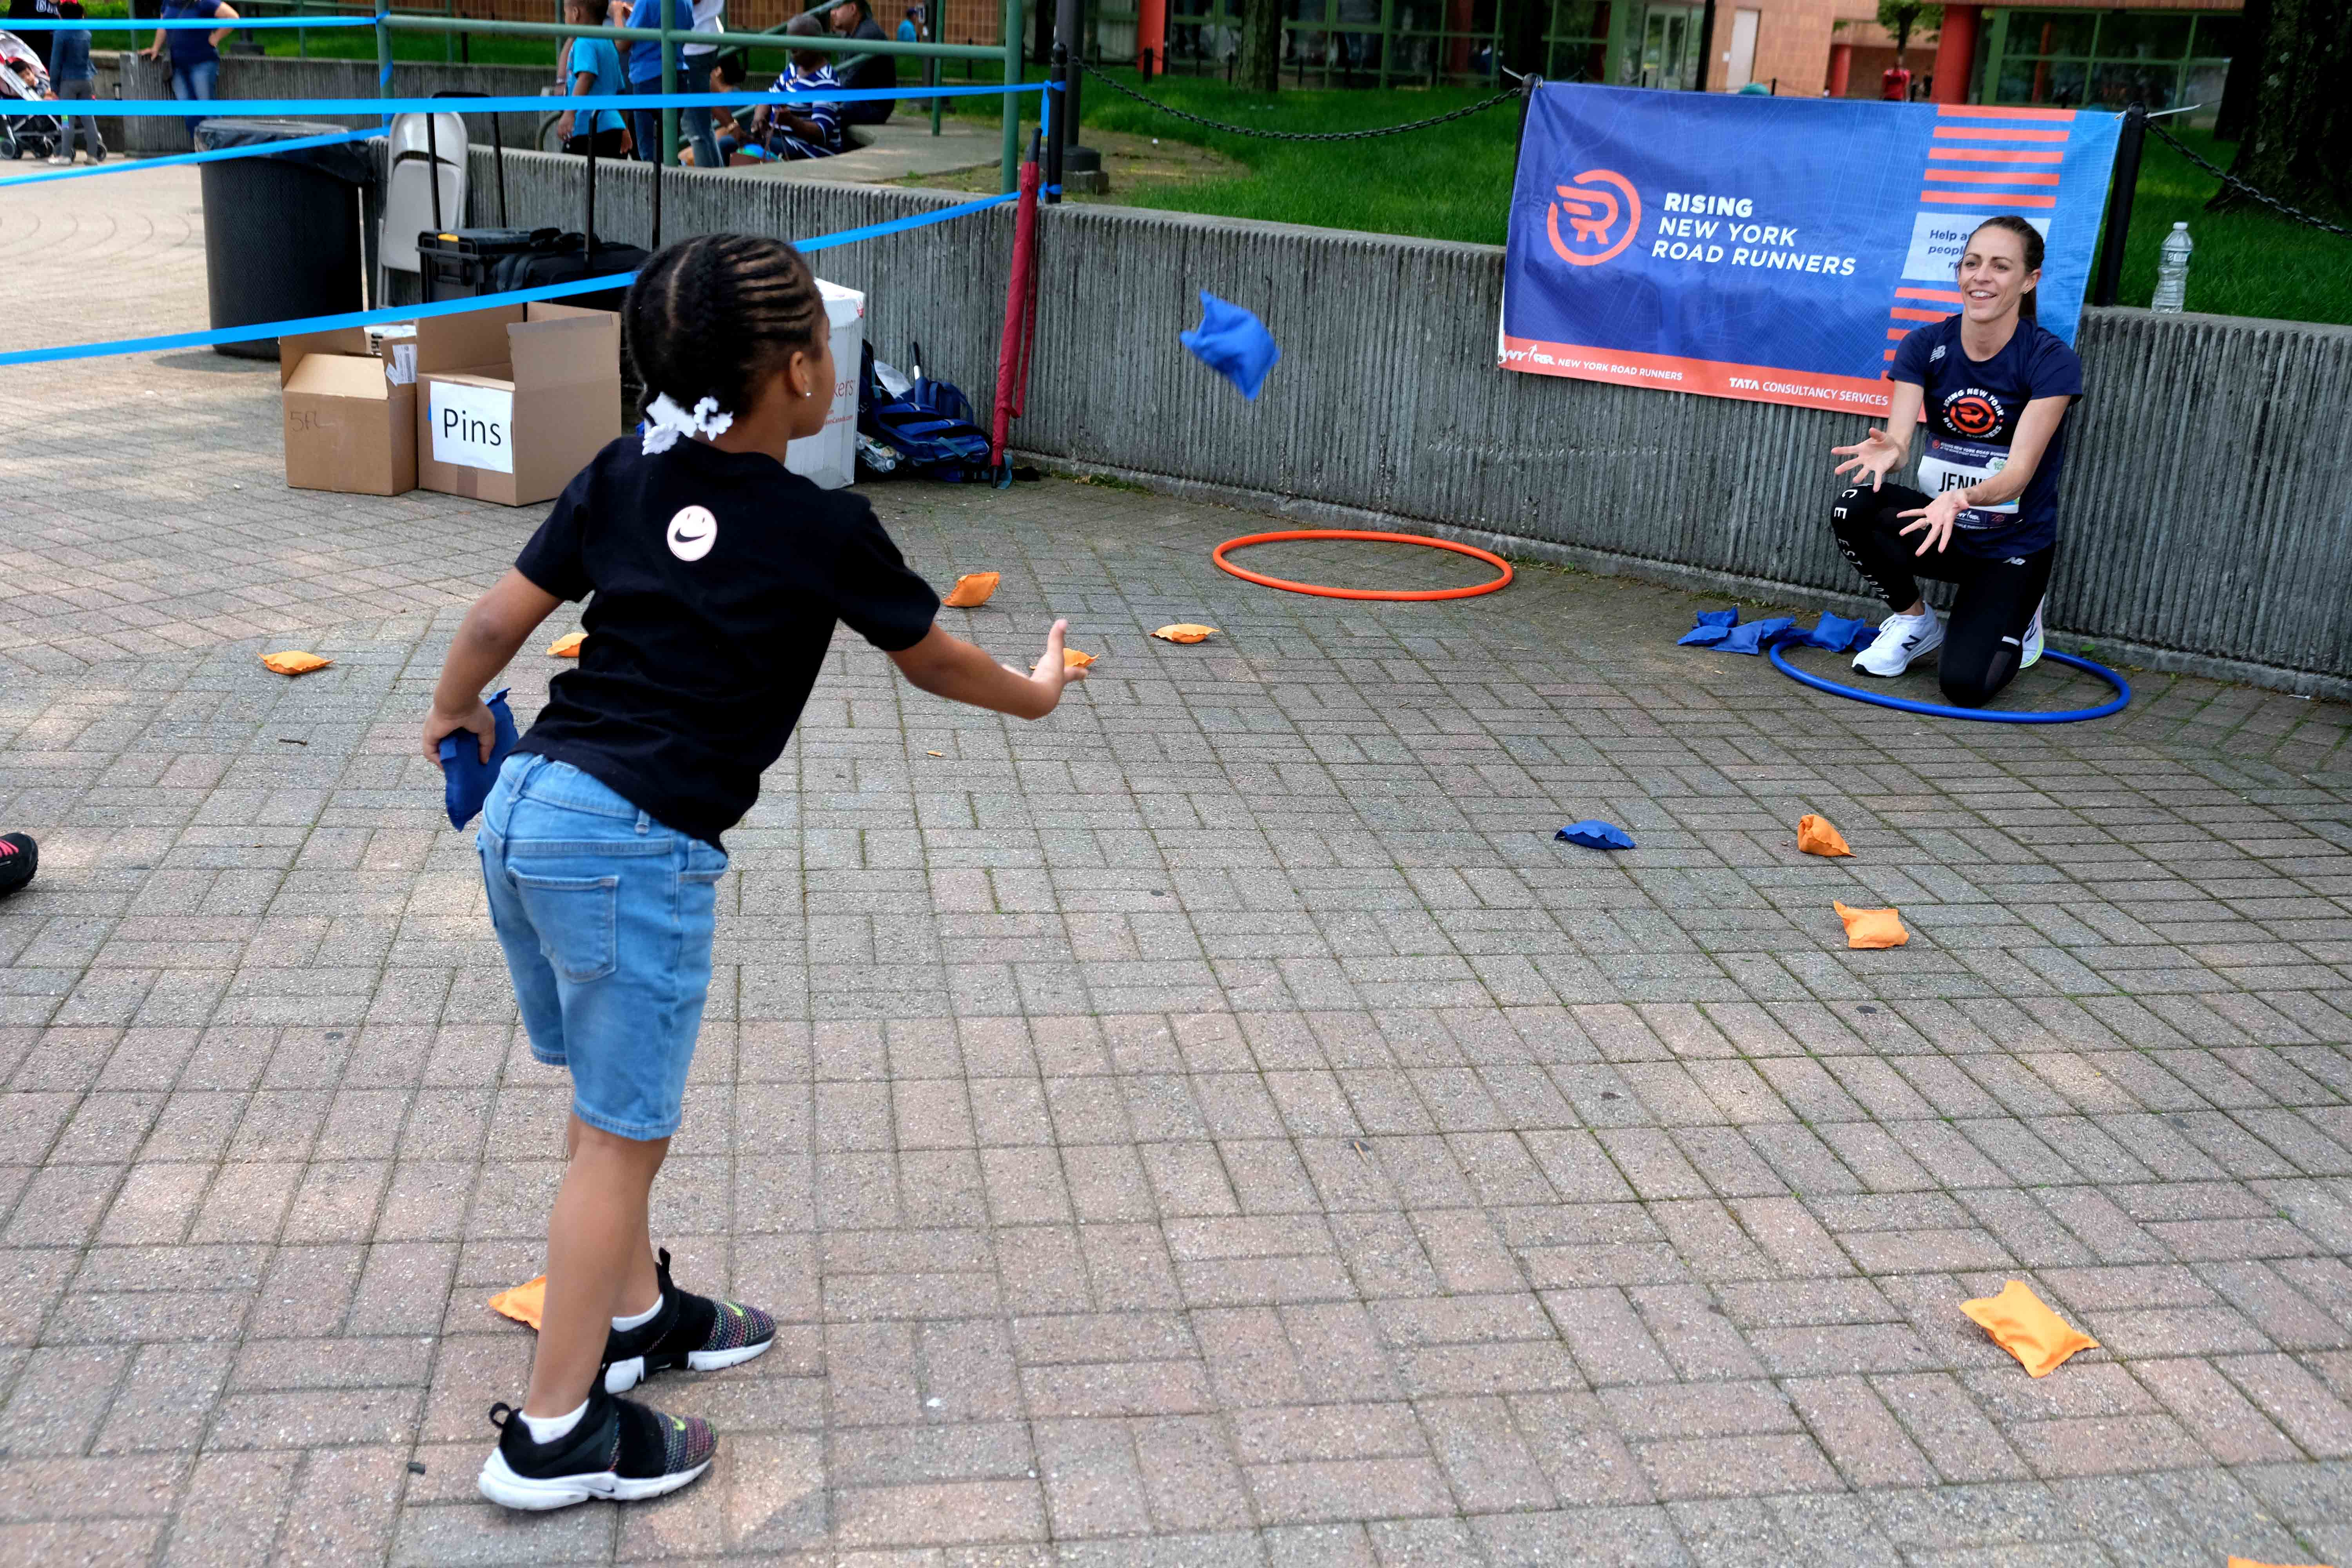 A Rising New York Road Runners student at a bean bag toss station with Jenny Simpson